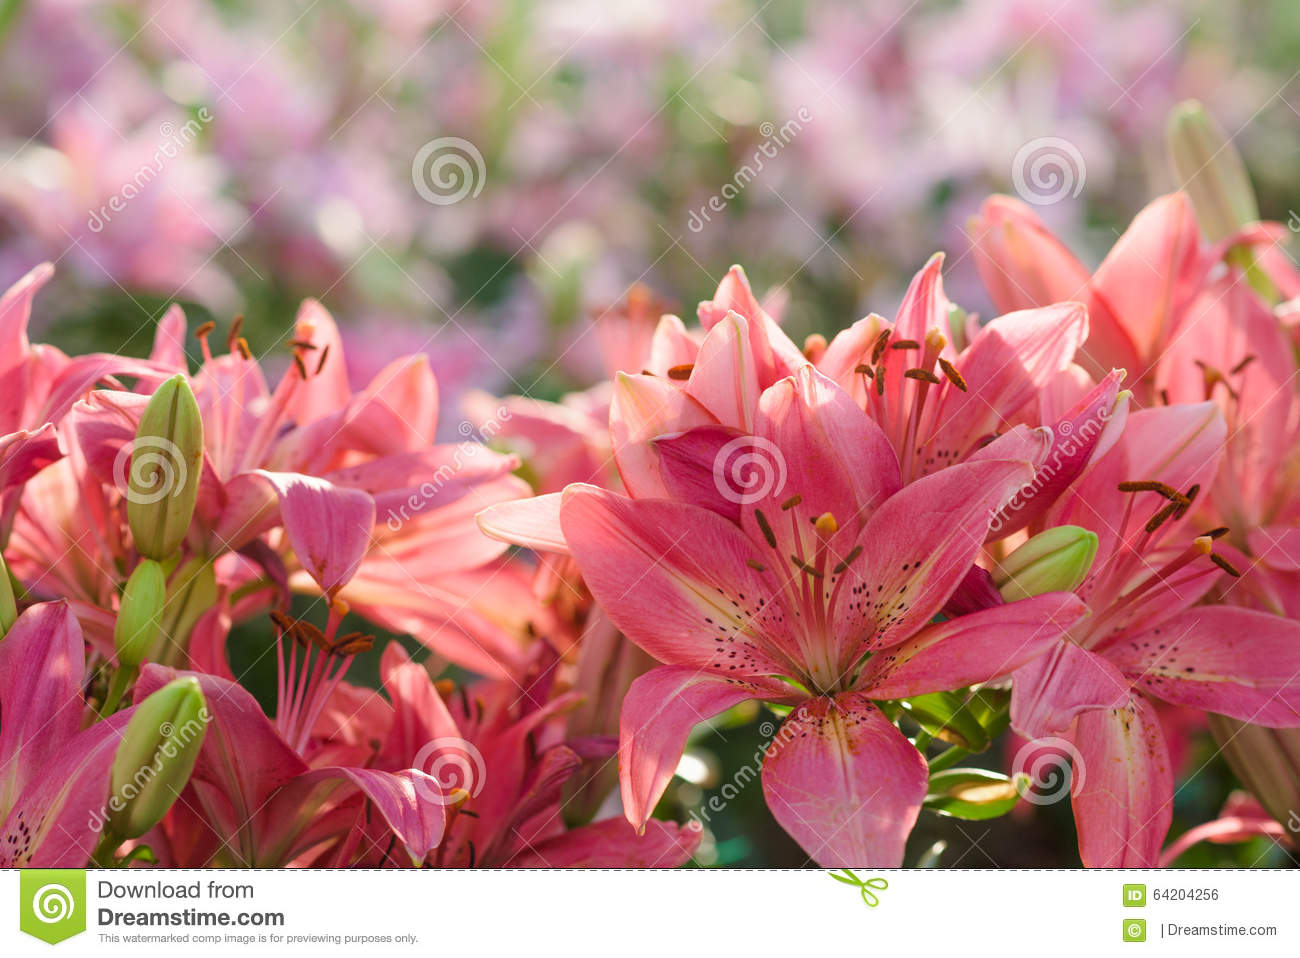 Beautiful flowers stock photo image 64204256 for Flowers that mean life